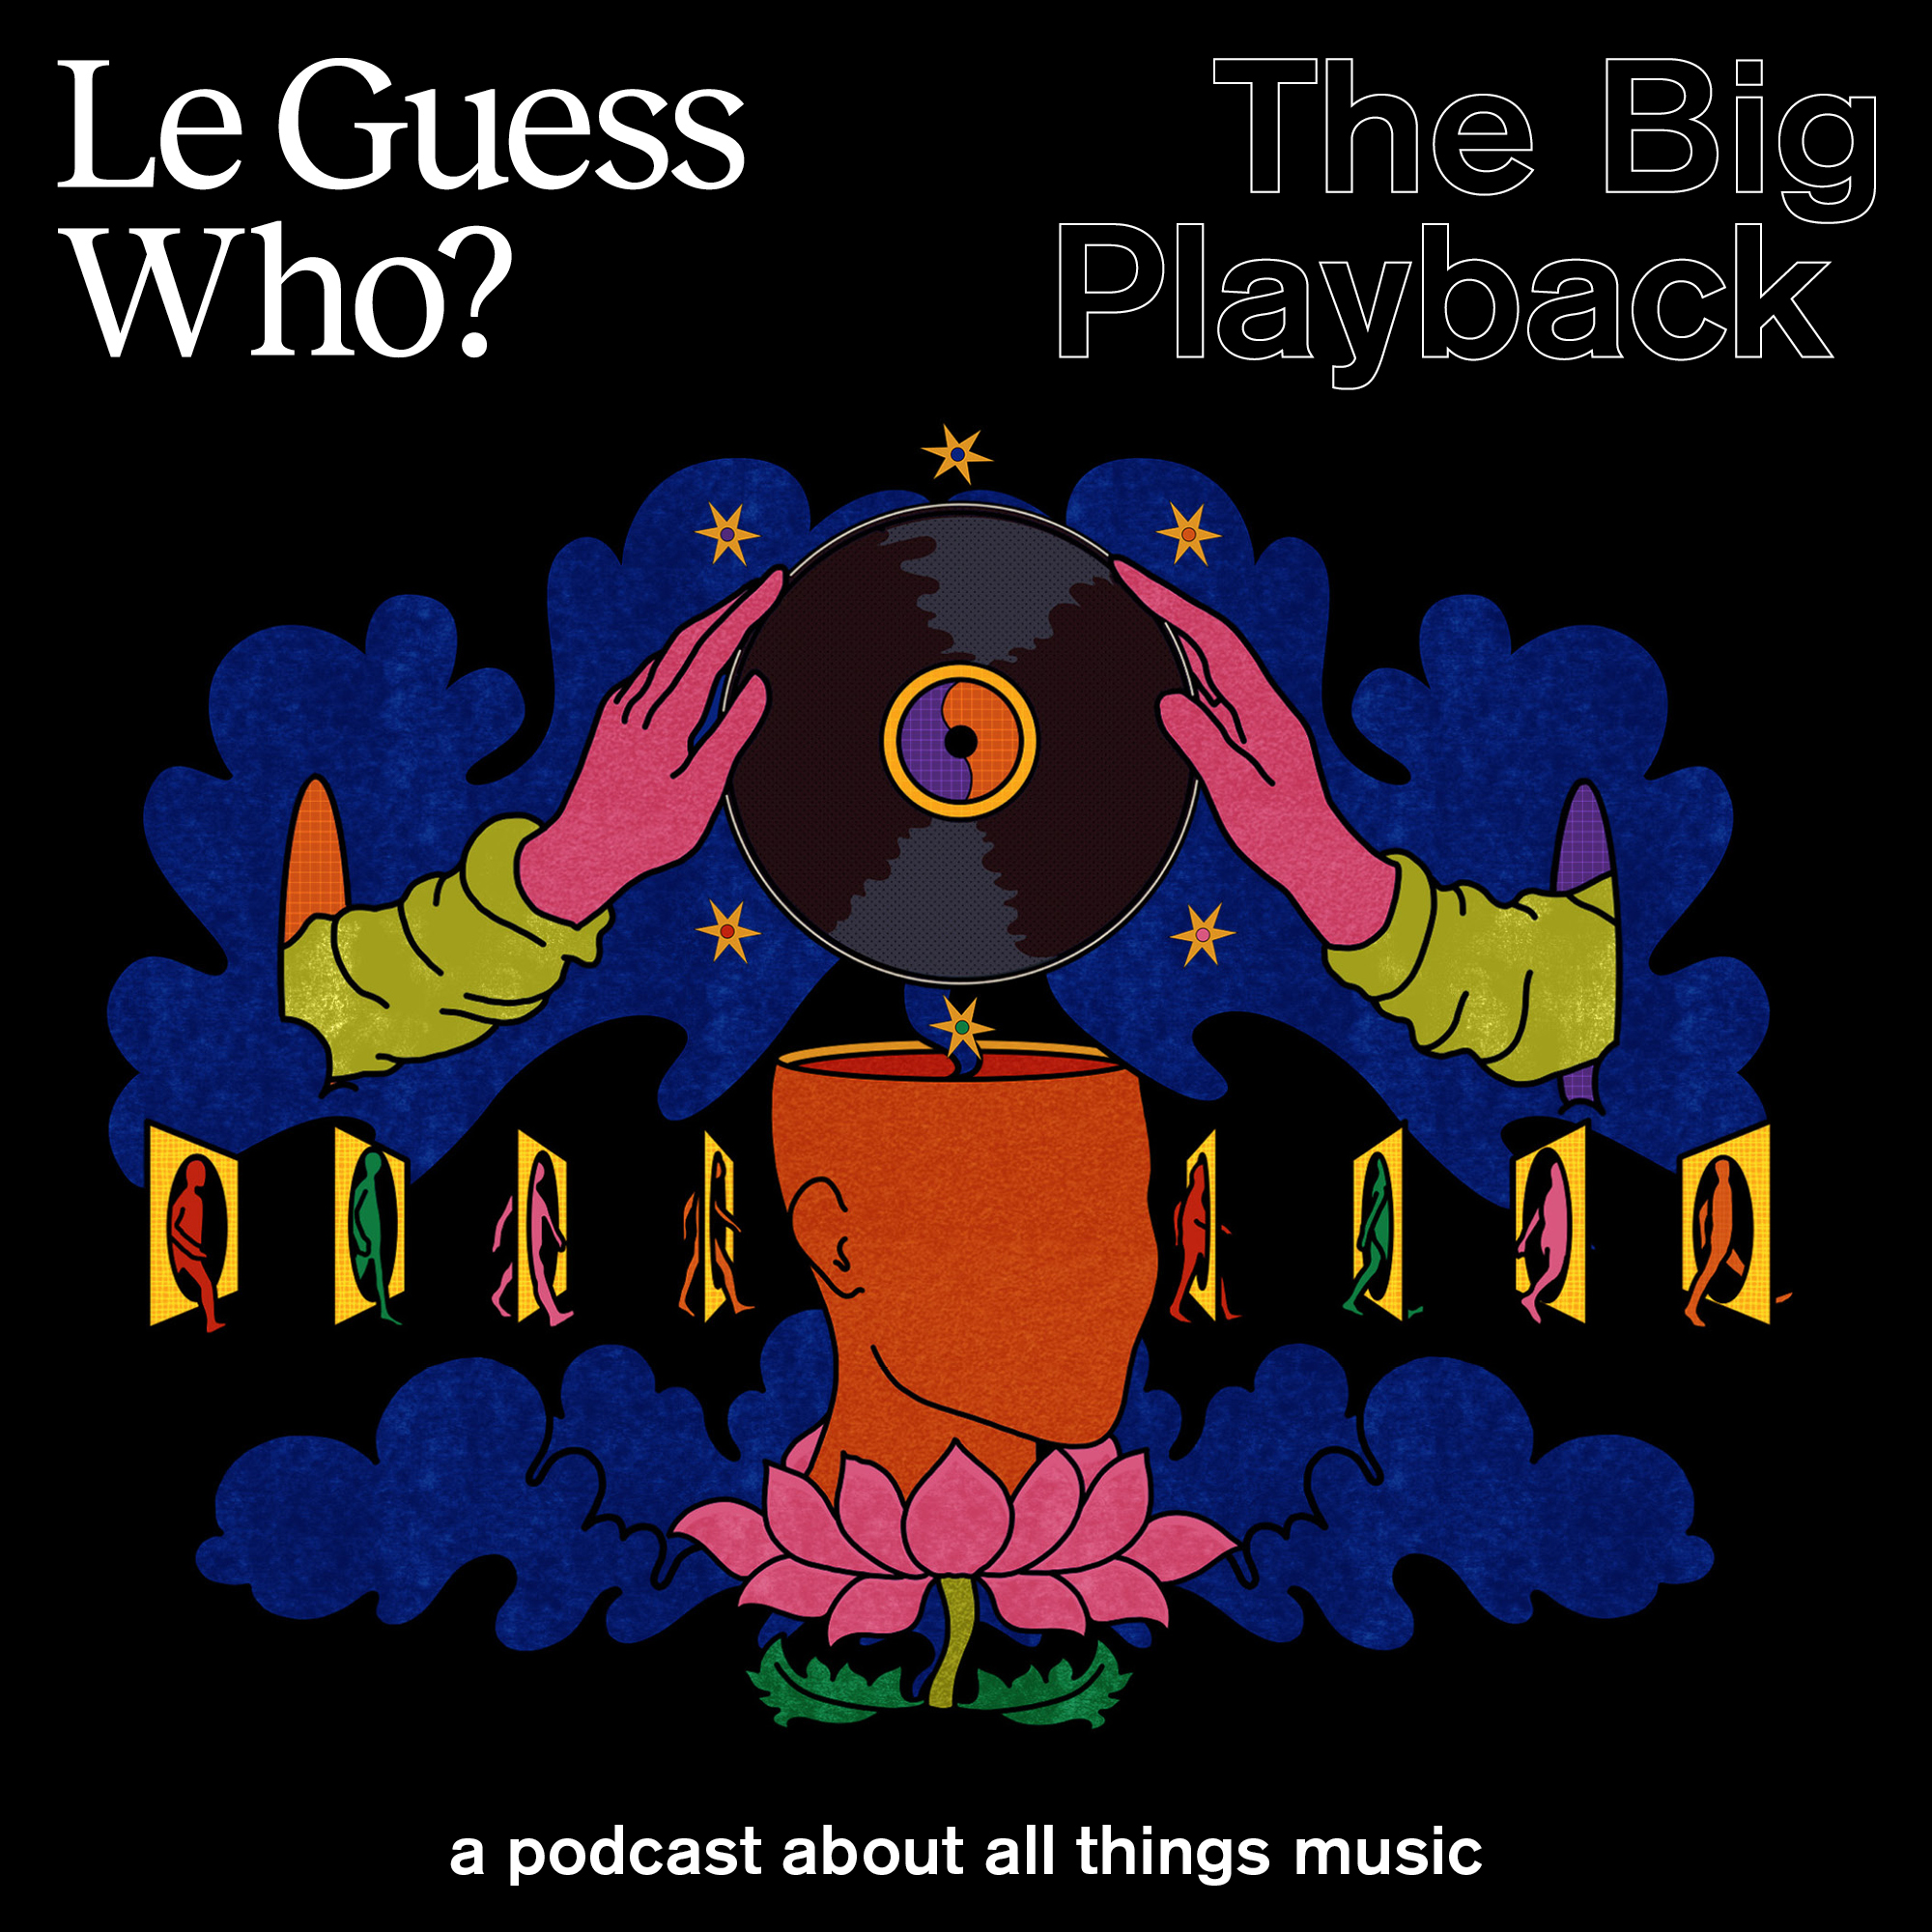 Le Guess Who? presents 'The Big Playback', a podcast about all things music; first episode out now